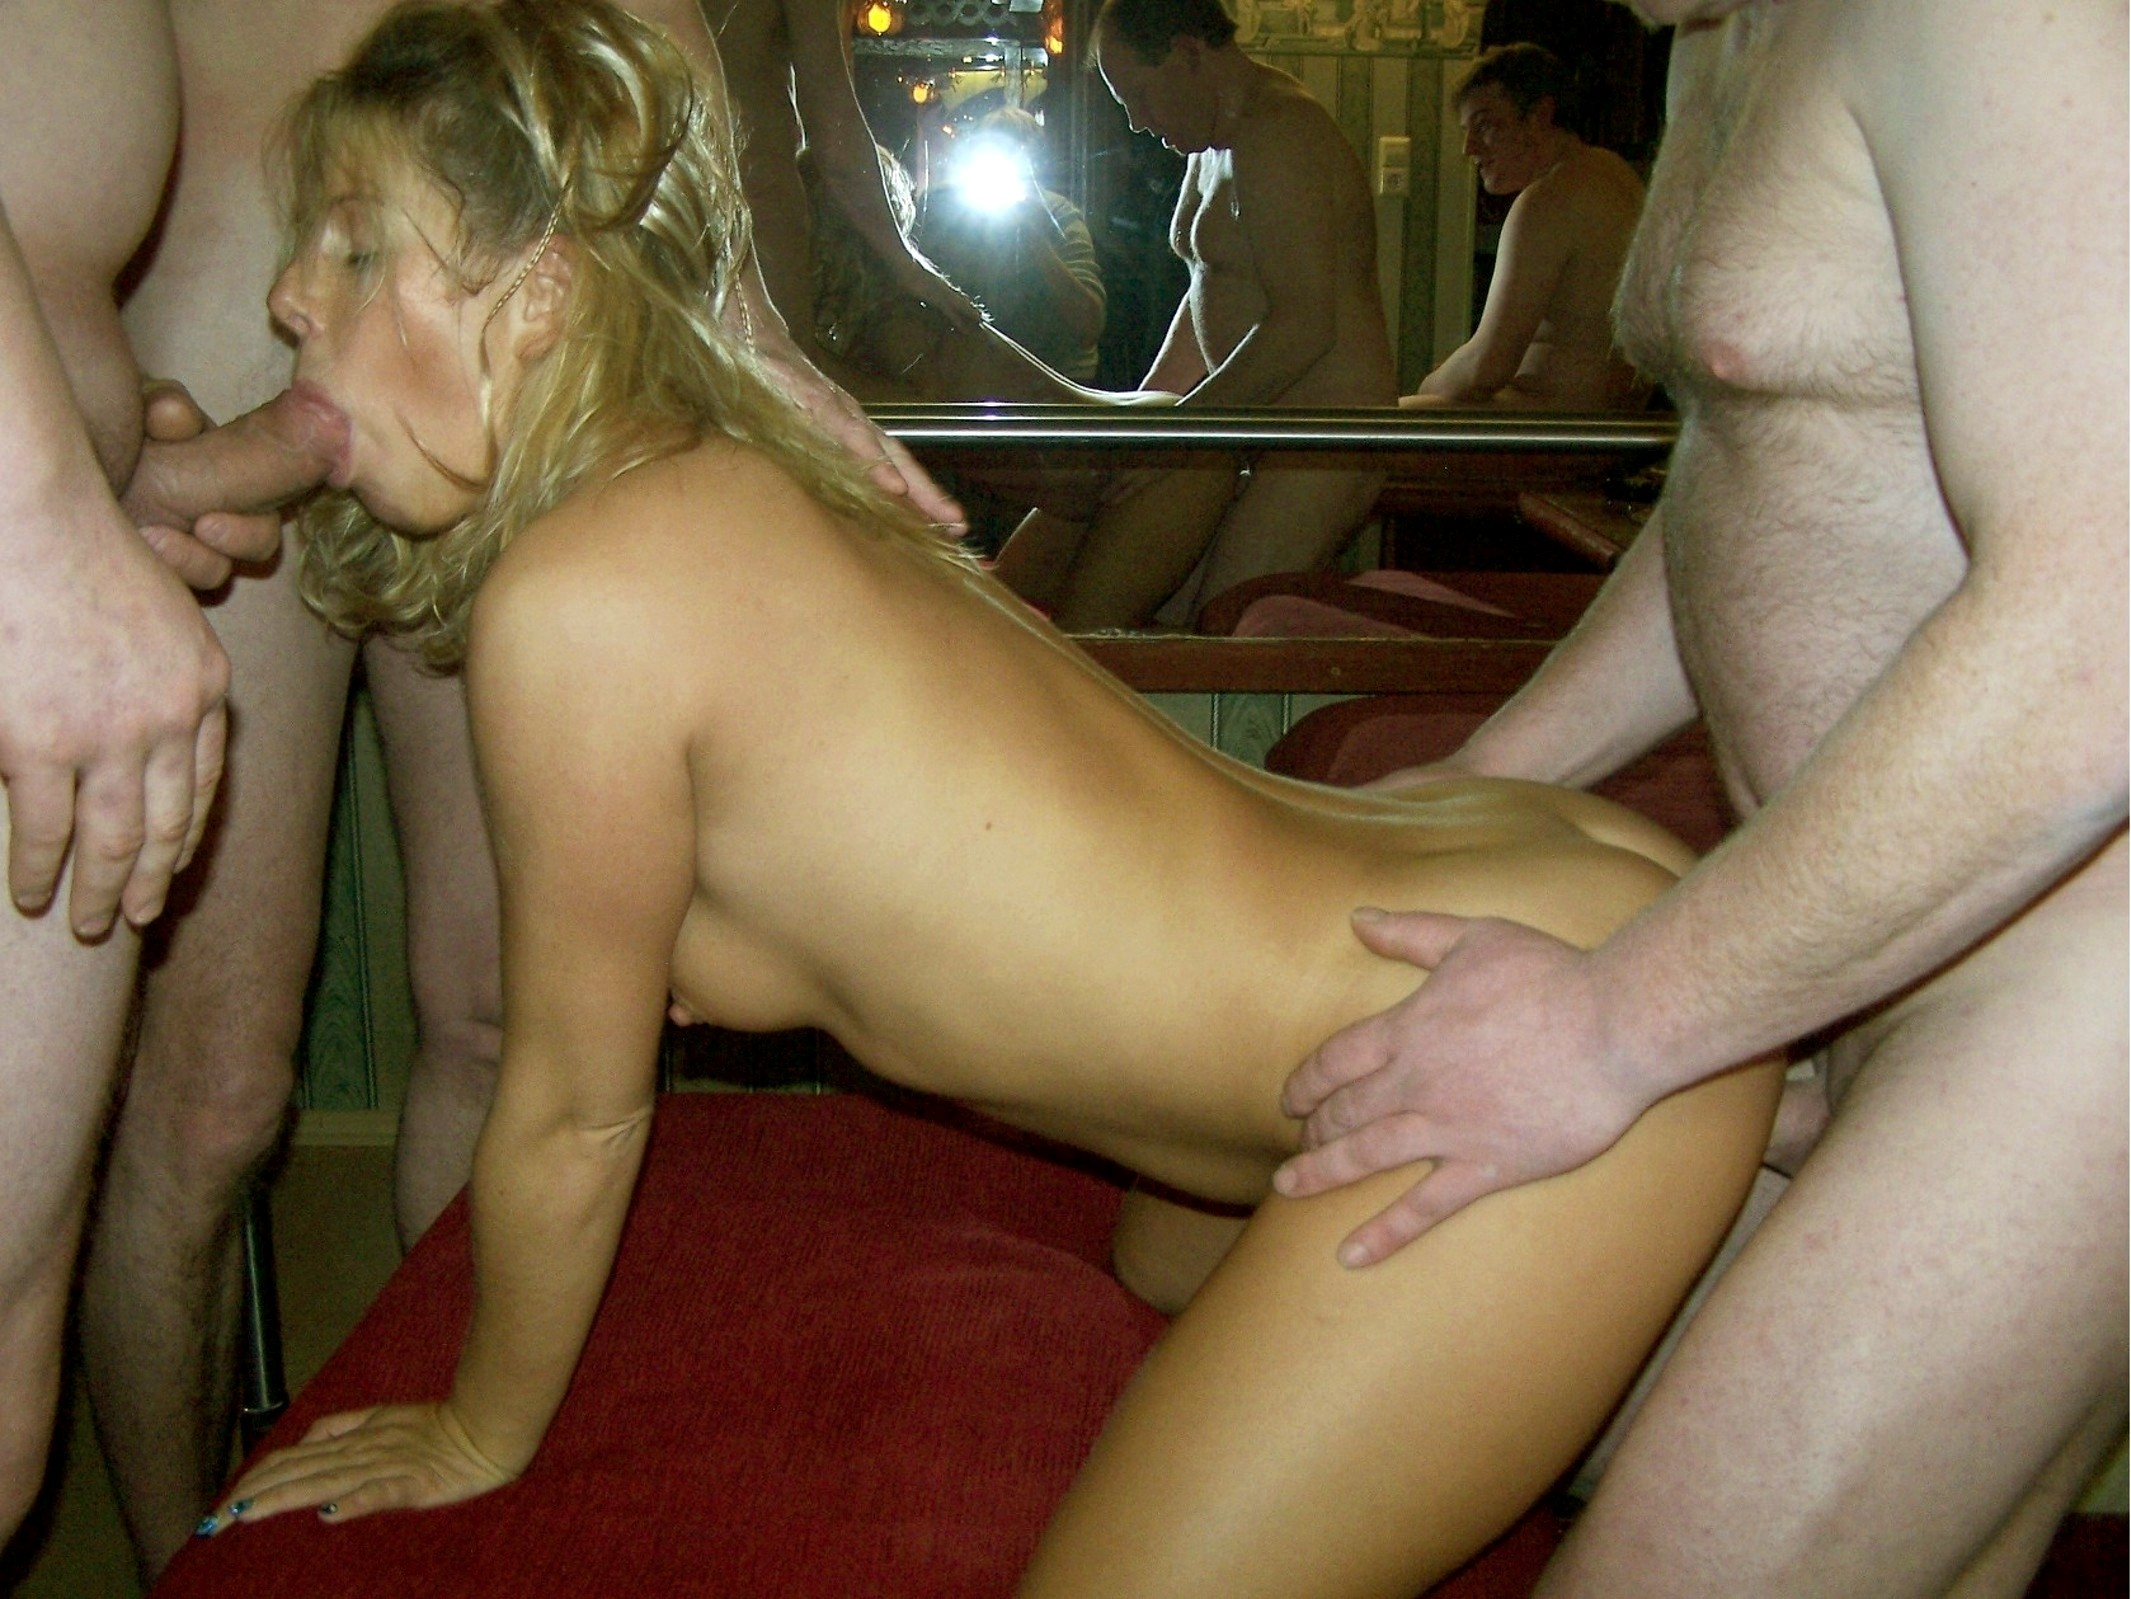 The hornyes pussy picturest -